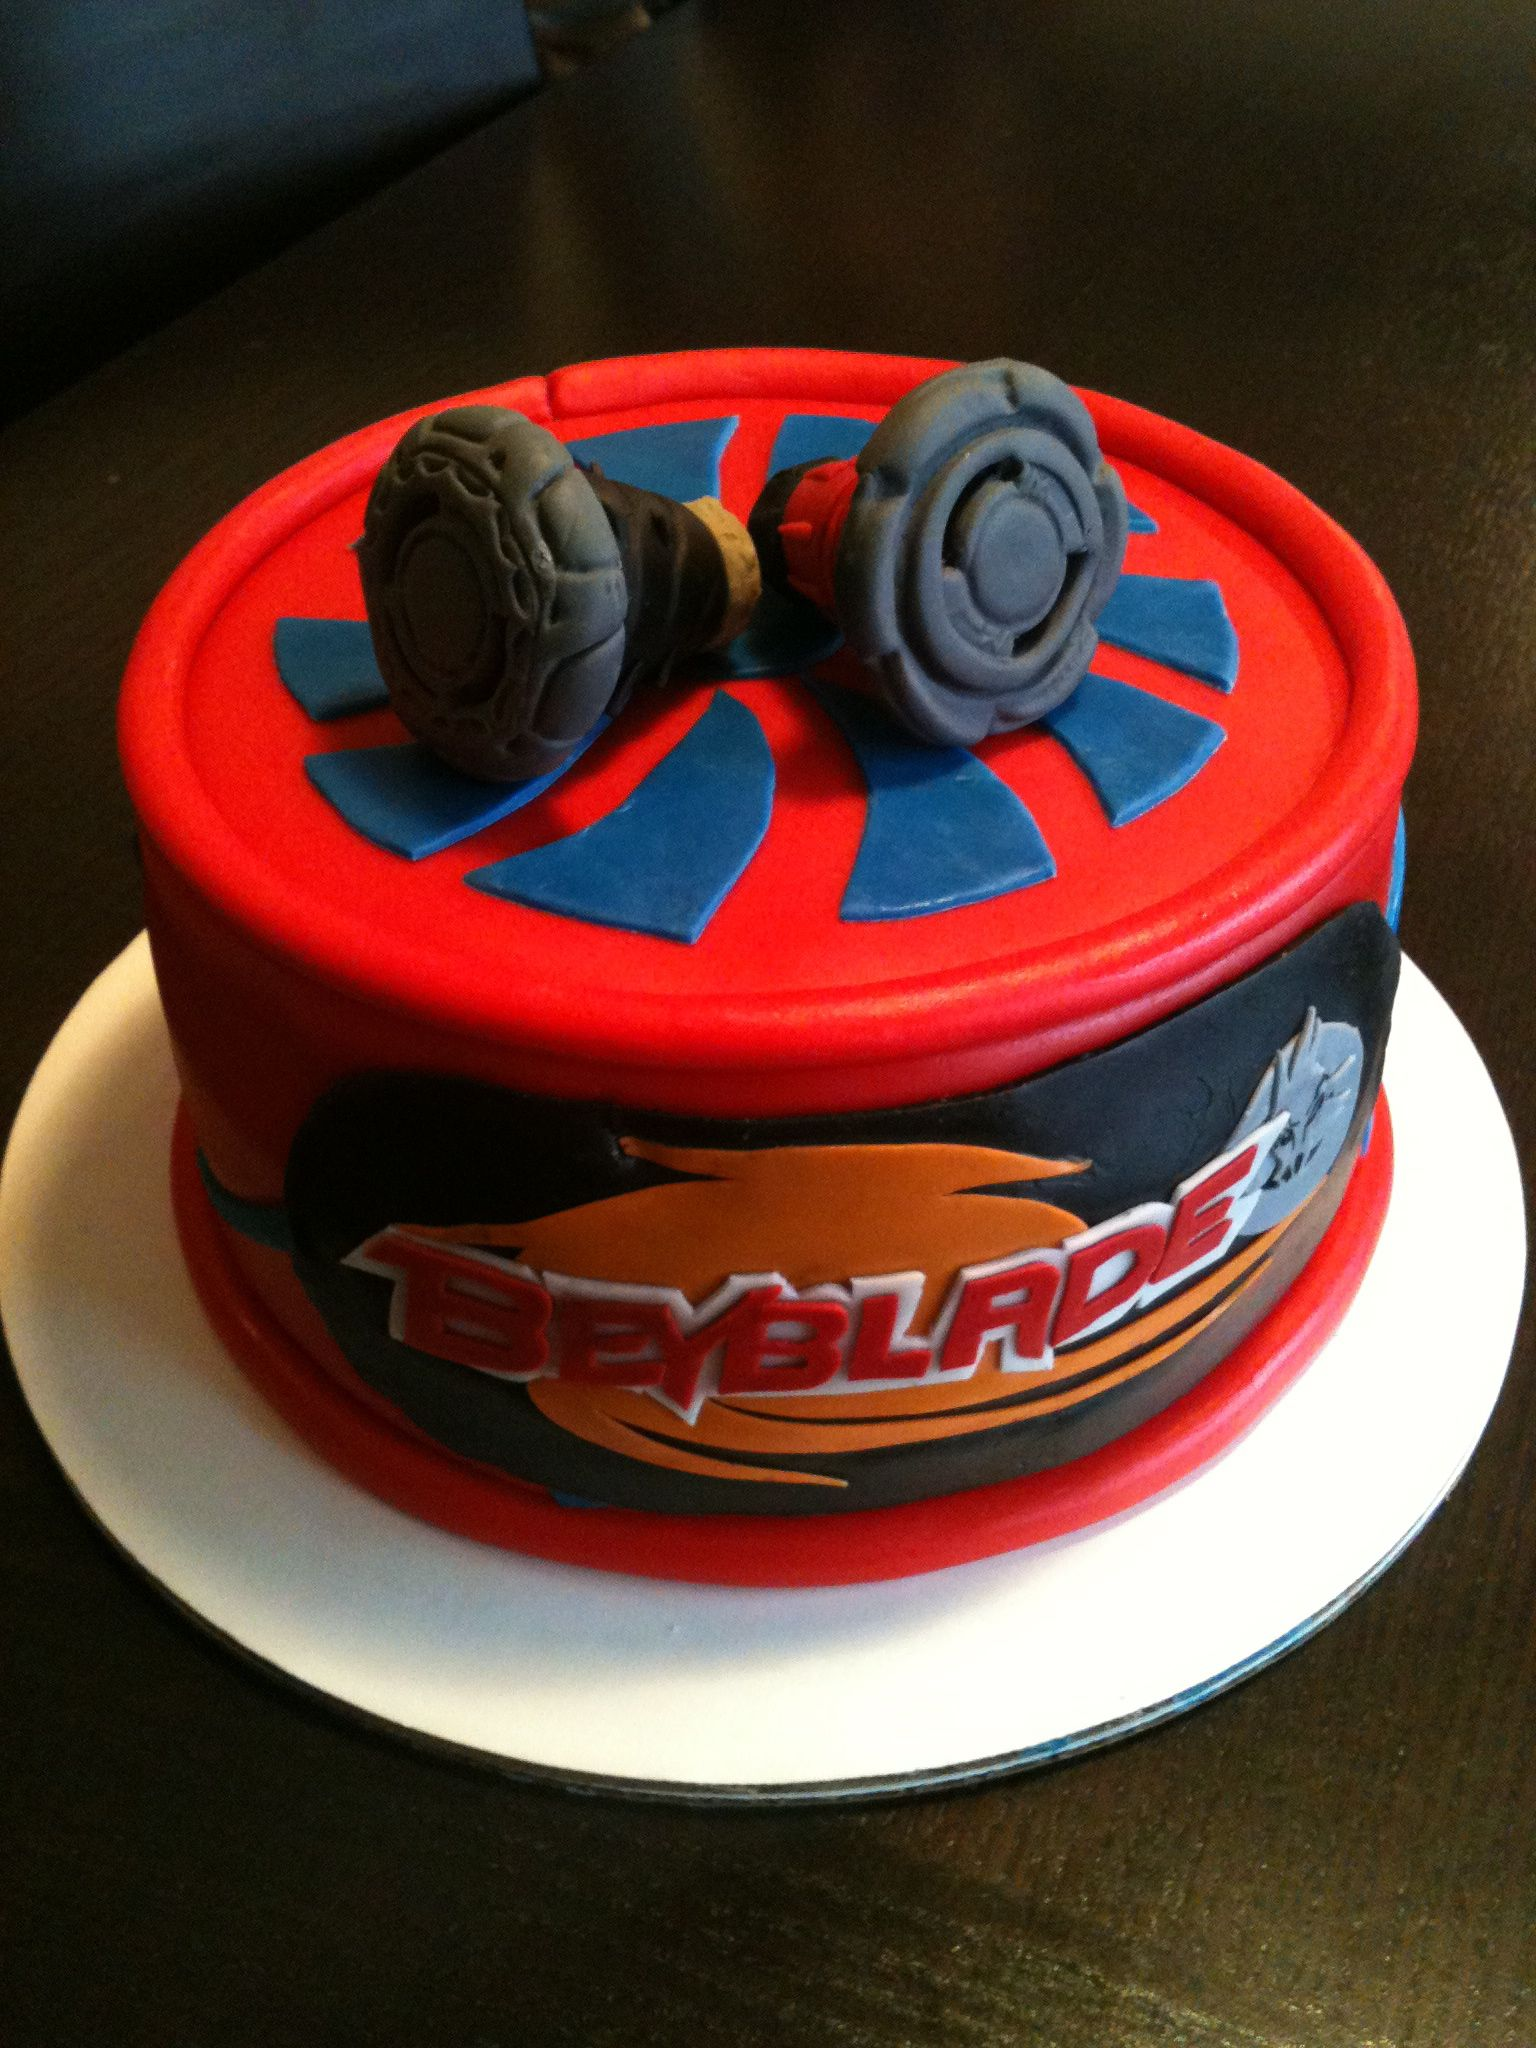 Beyblade Cake Don T Let It Rip Please They Are Edible